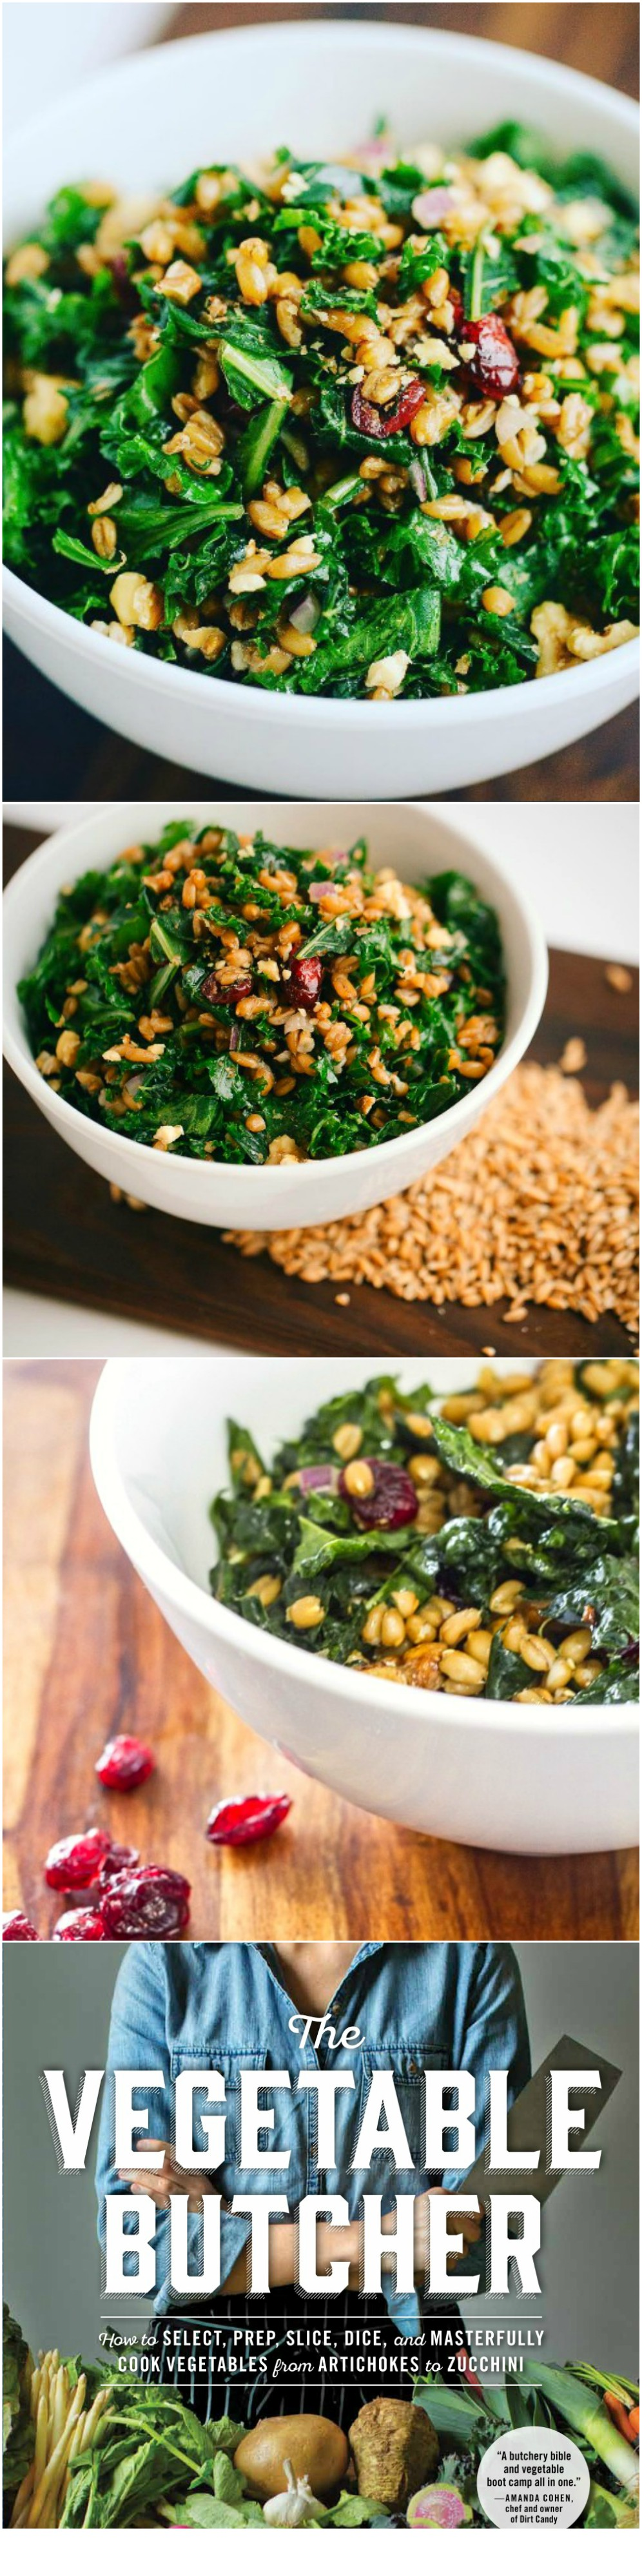 Photo collage of Kale and Spelt Berry Salad with Sweet Cranberries and Lemon Dressing by Cara Mangini of Little Eater Restaurant in Columbus, Ohio